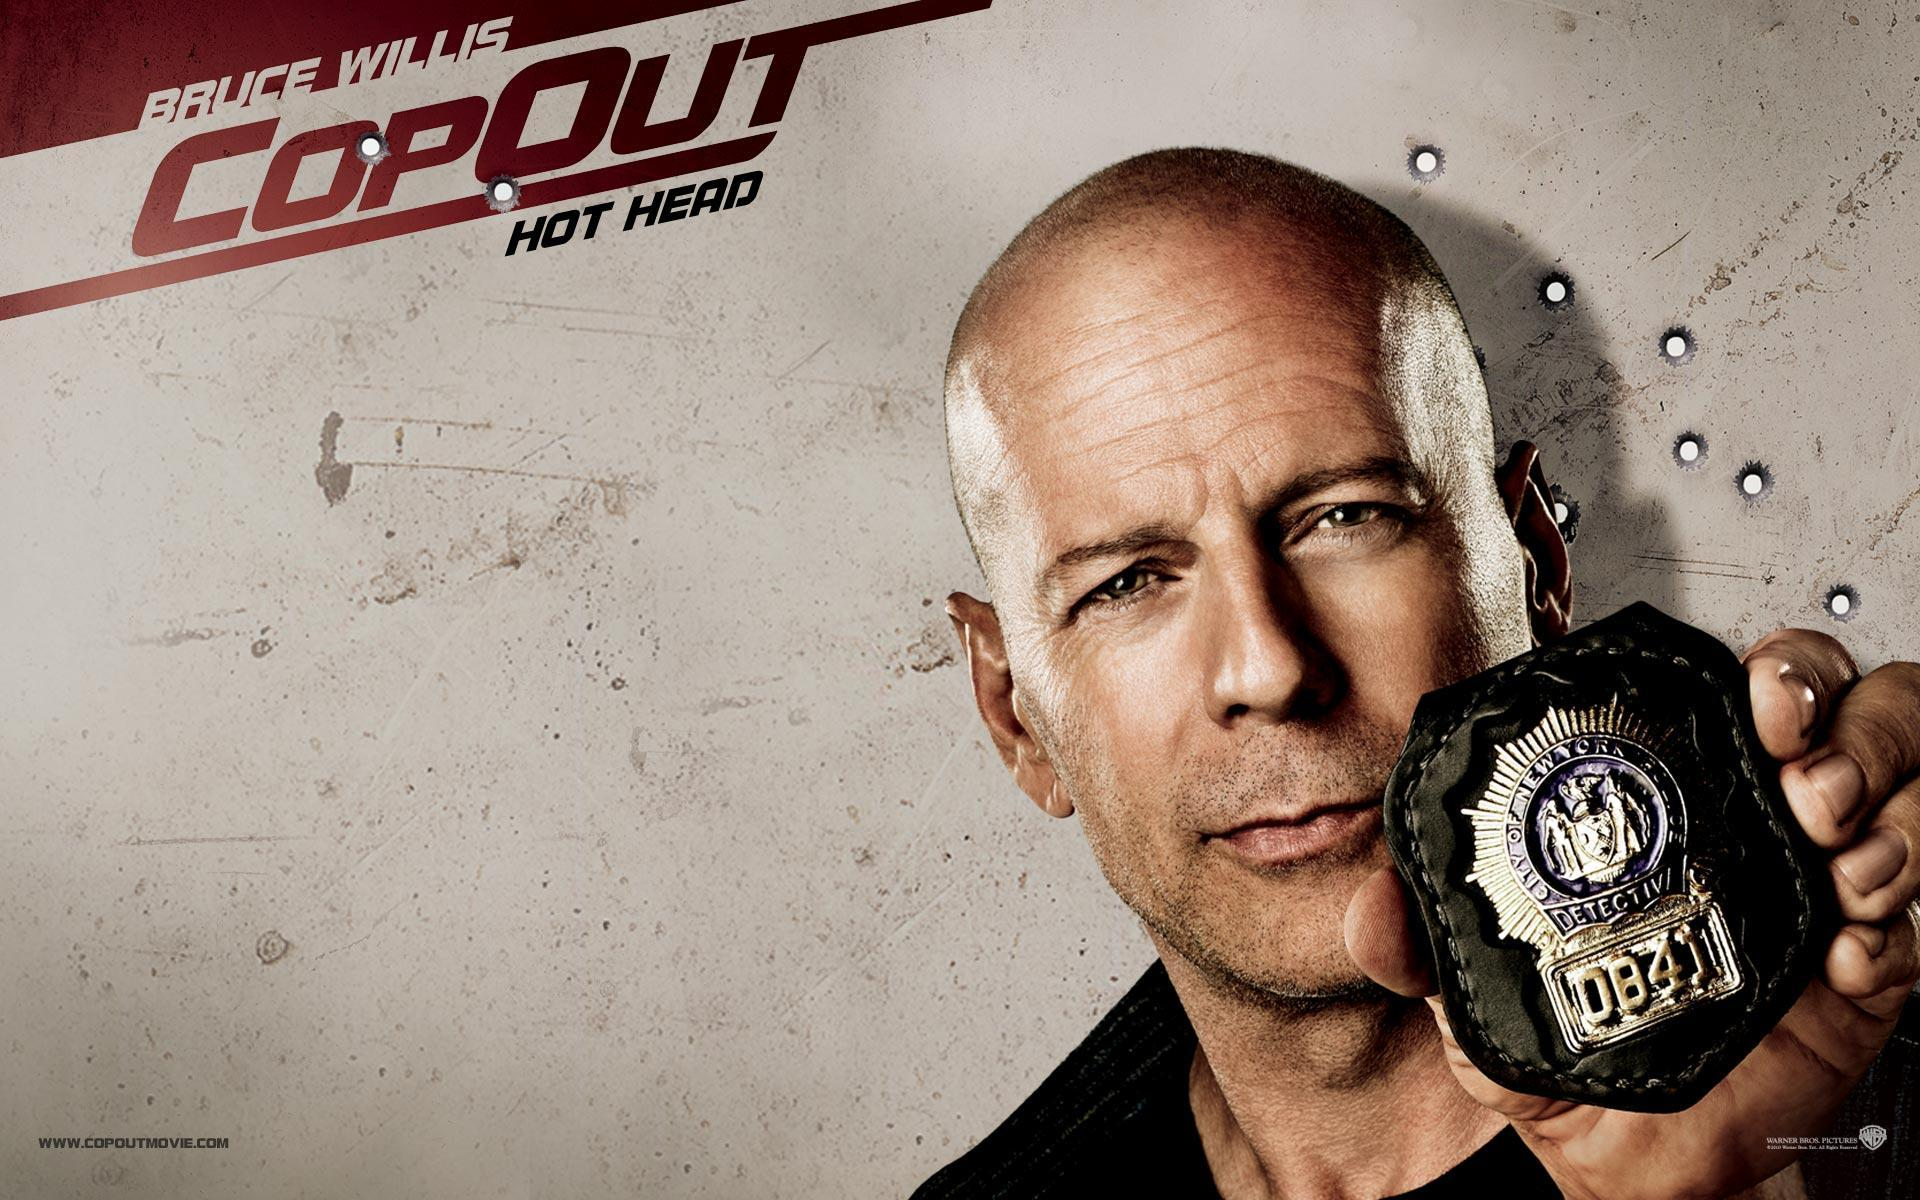 Bruce Willis in Cop Out Wallpaper 1 Wallpapers - HD Wallpapers 78191